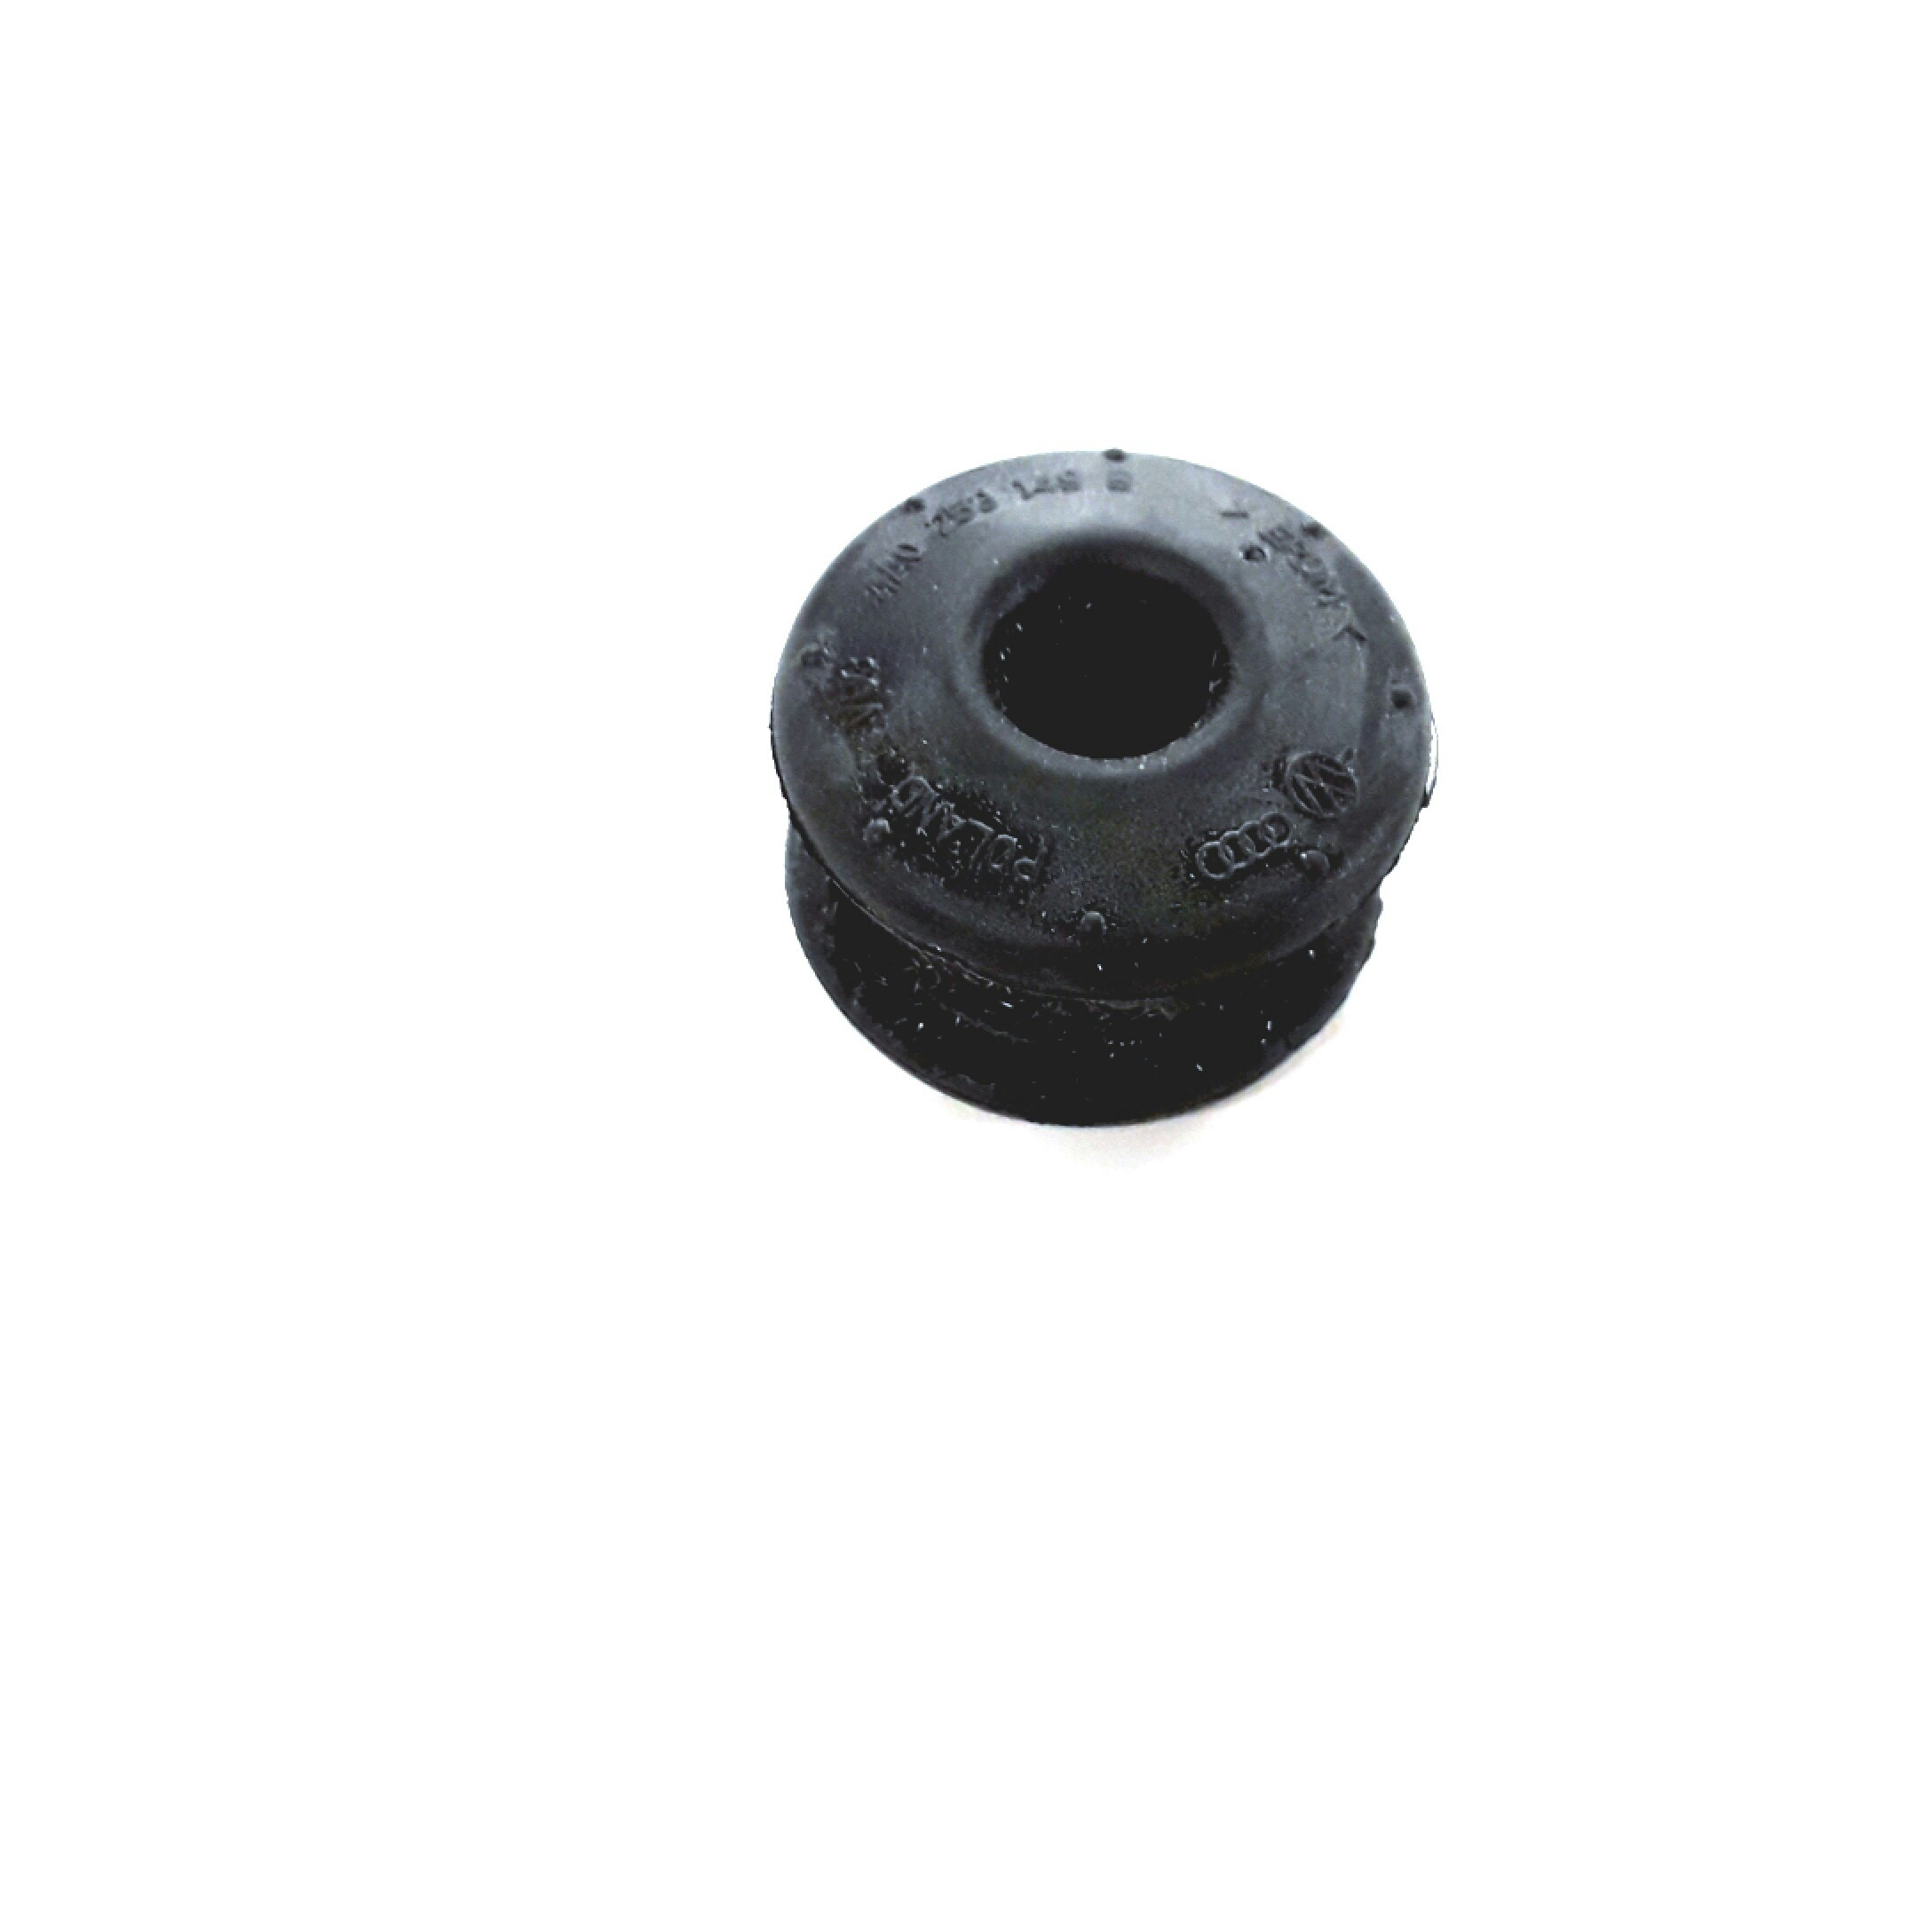 Audi A5 Sportback Rubber Bush Rubber Bushing 4a0253149b